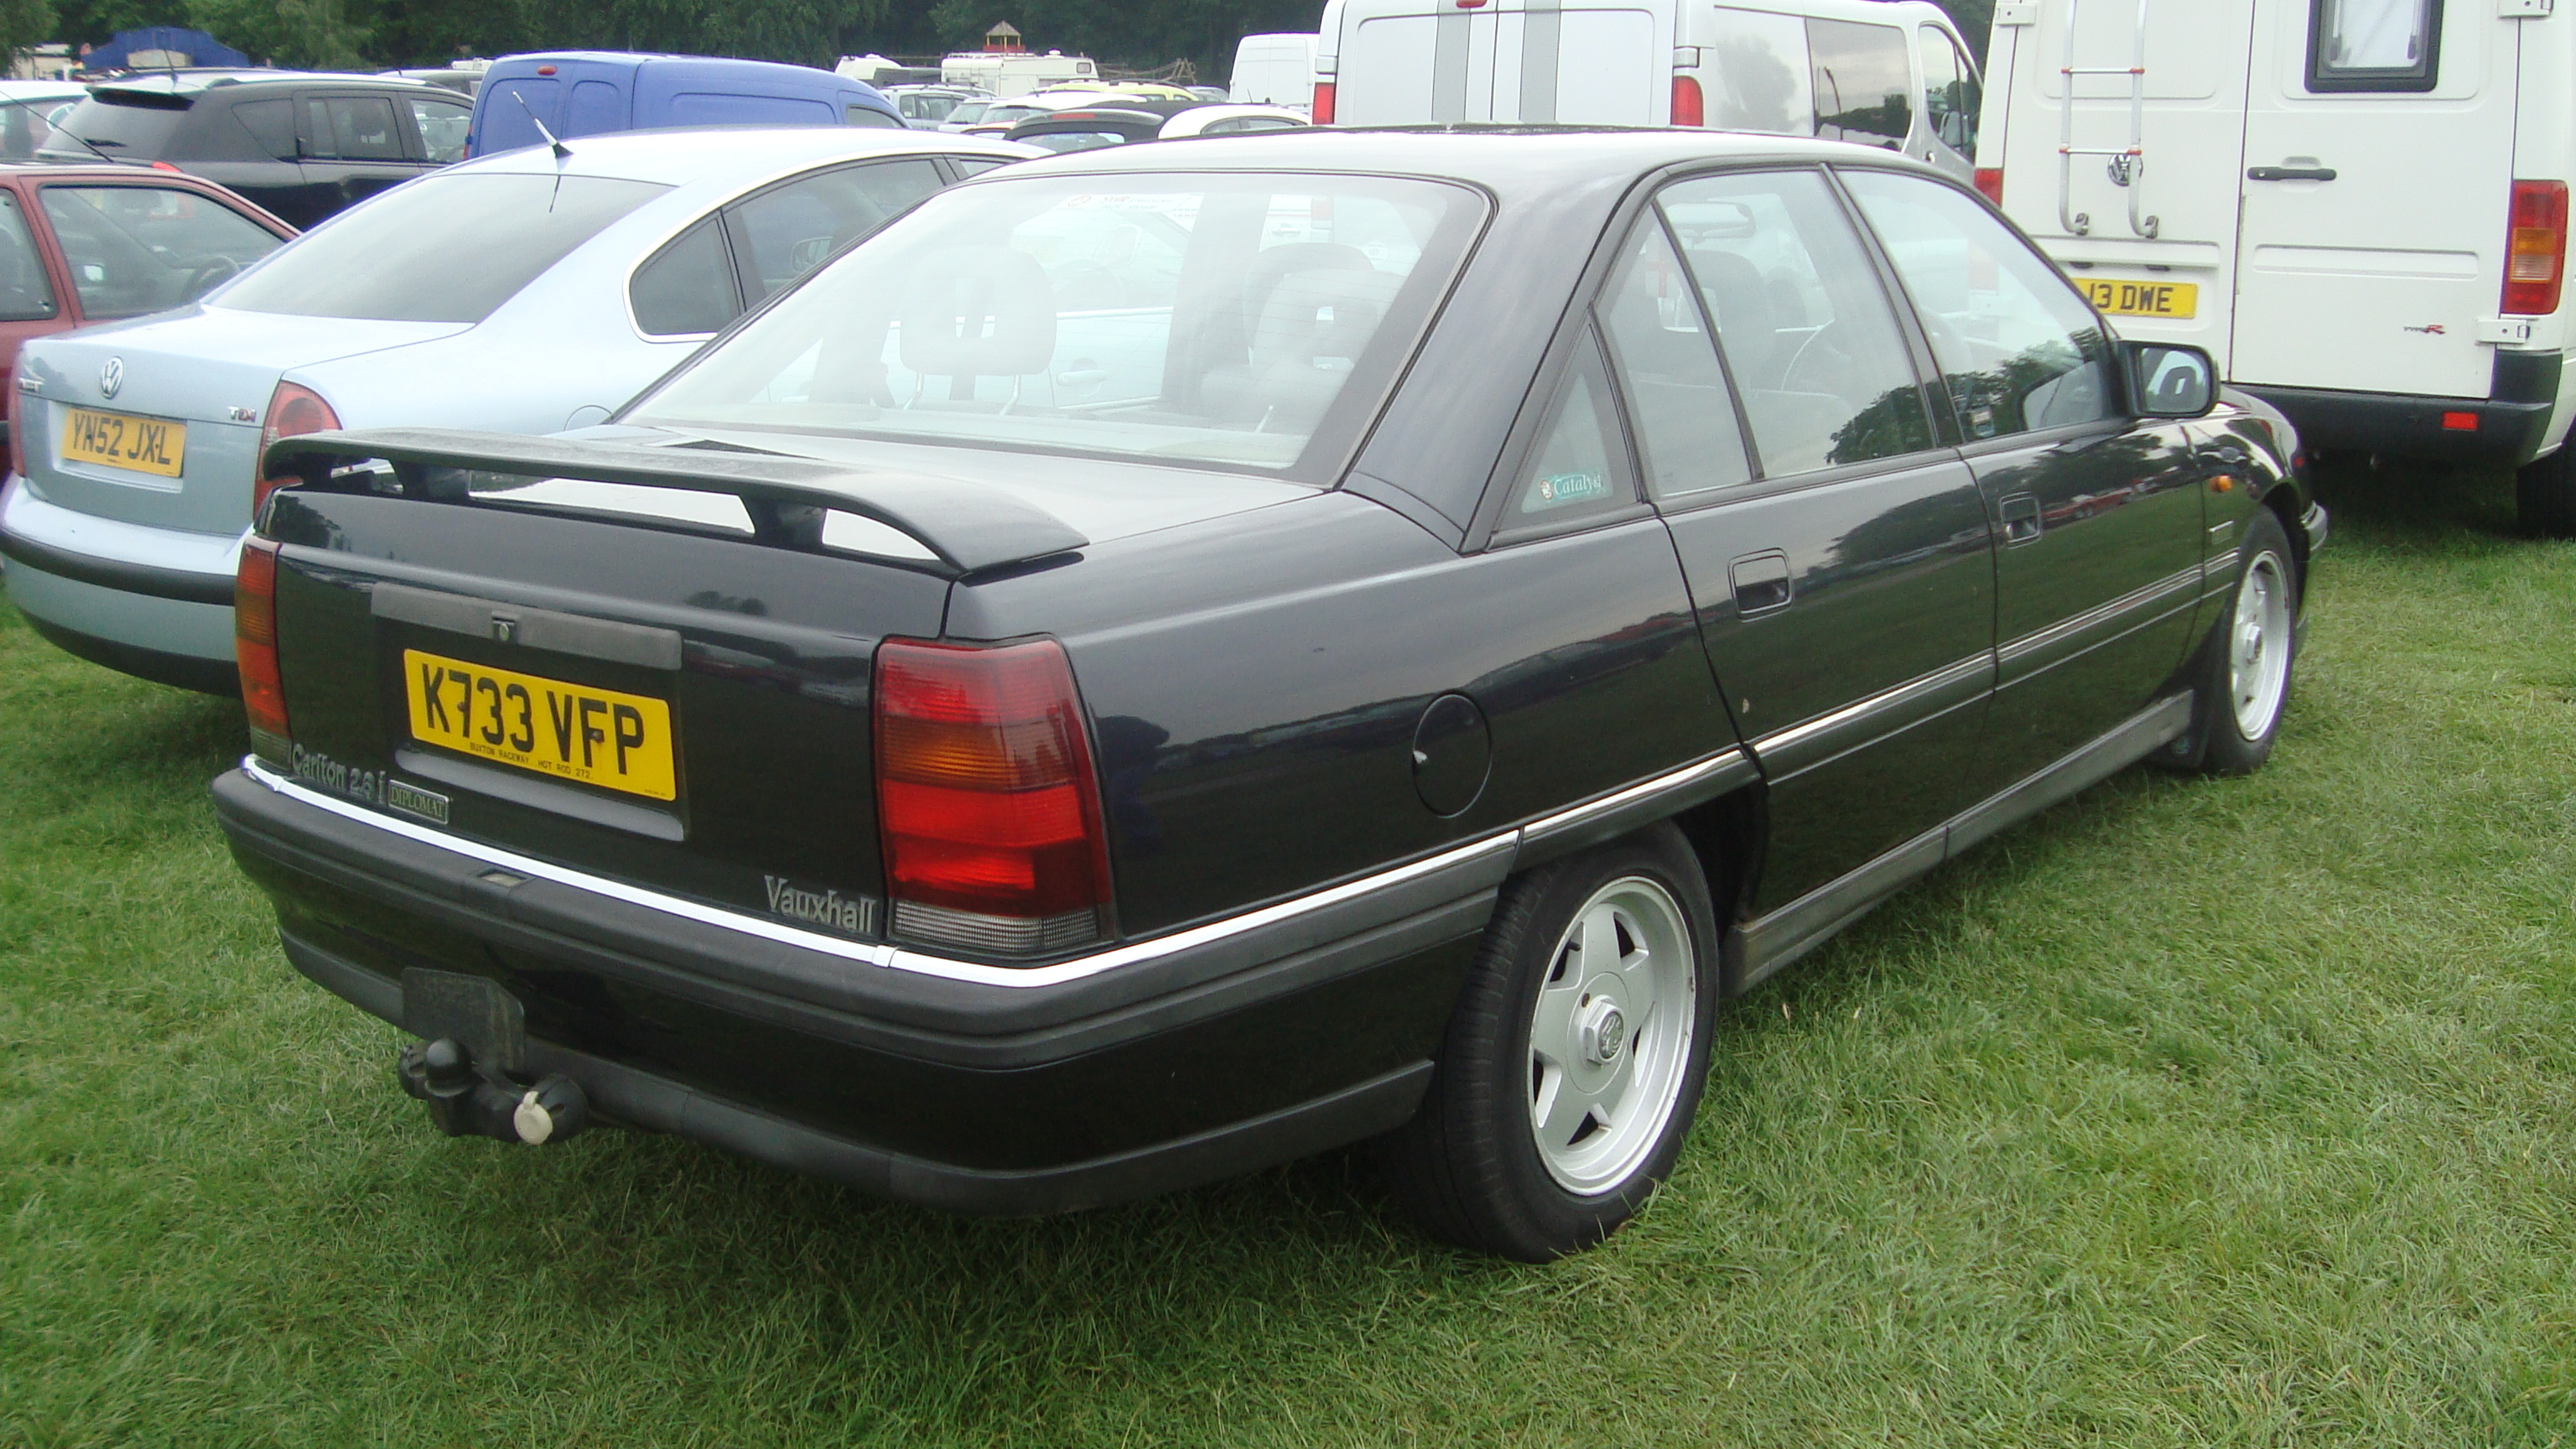 vauxhall lotus carlton specs vauxhall carlton lotus specs photos videos and more on. Black Bedroom Furniture Sets. Home Design Ideas